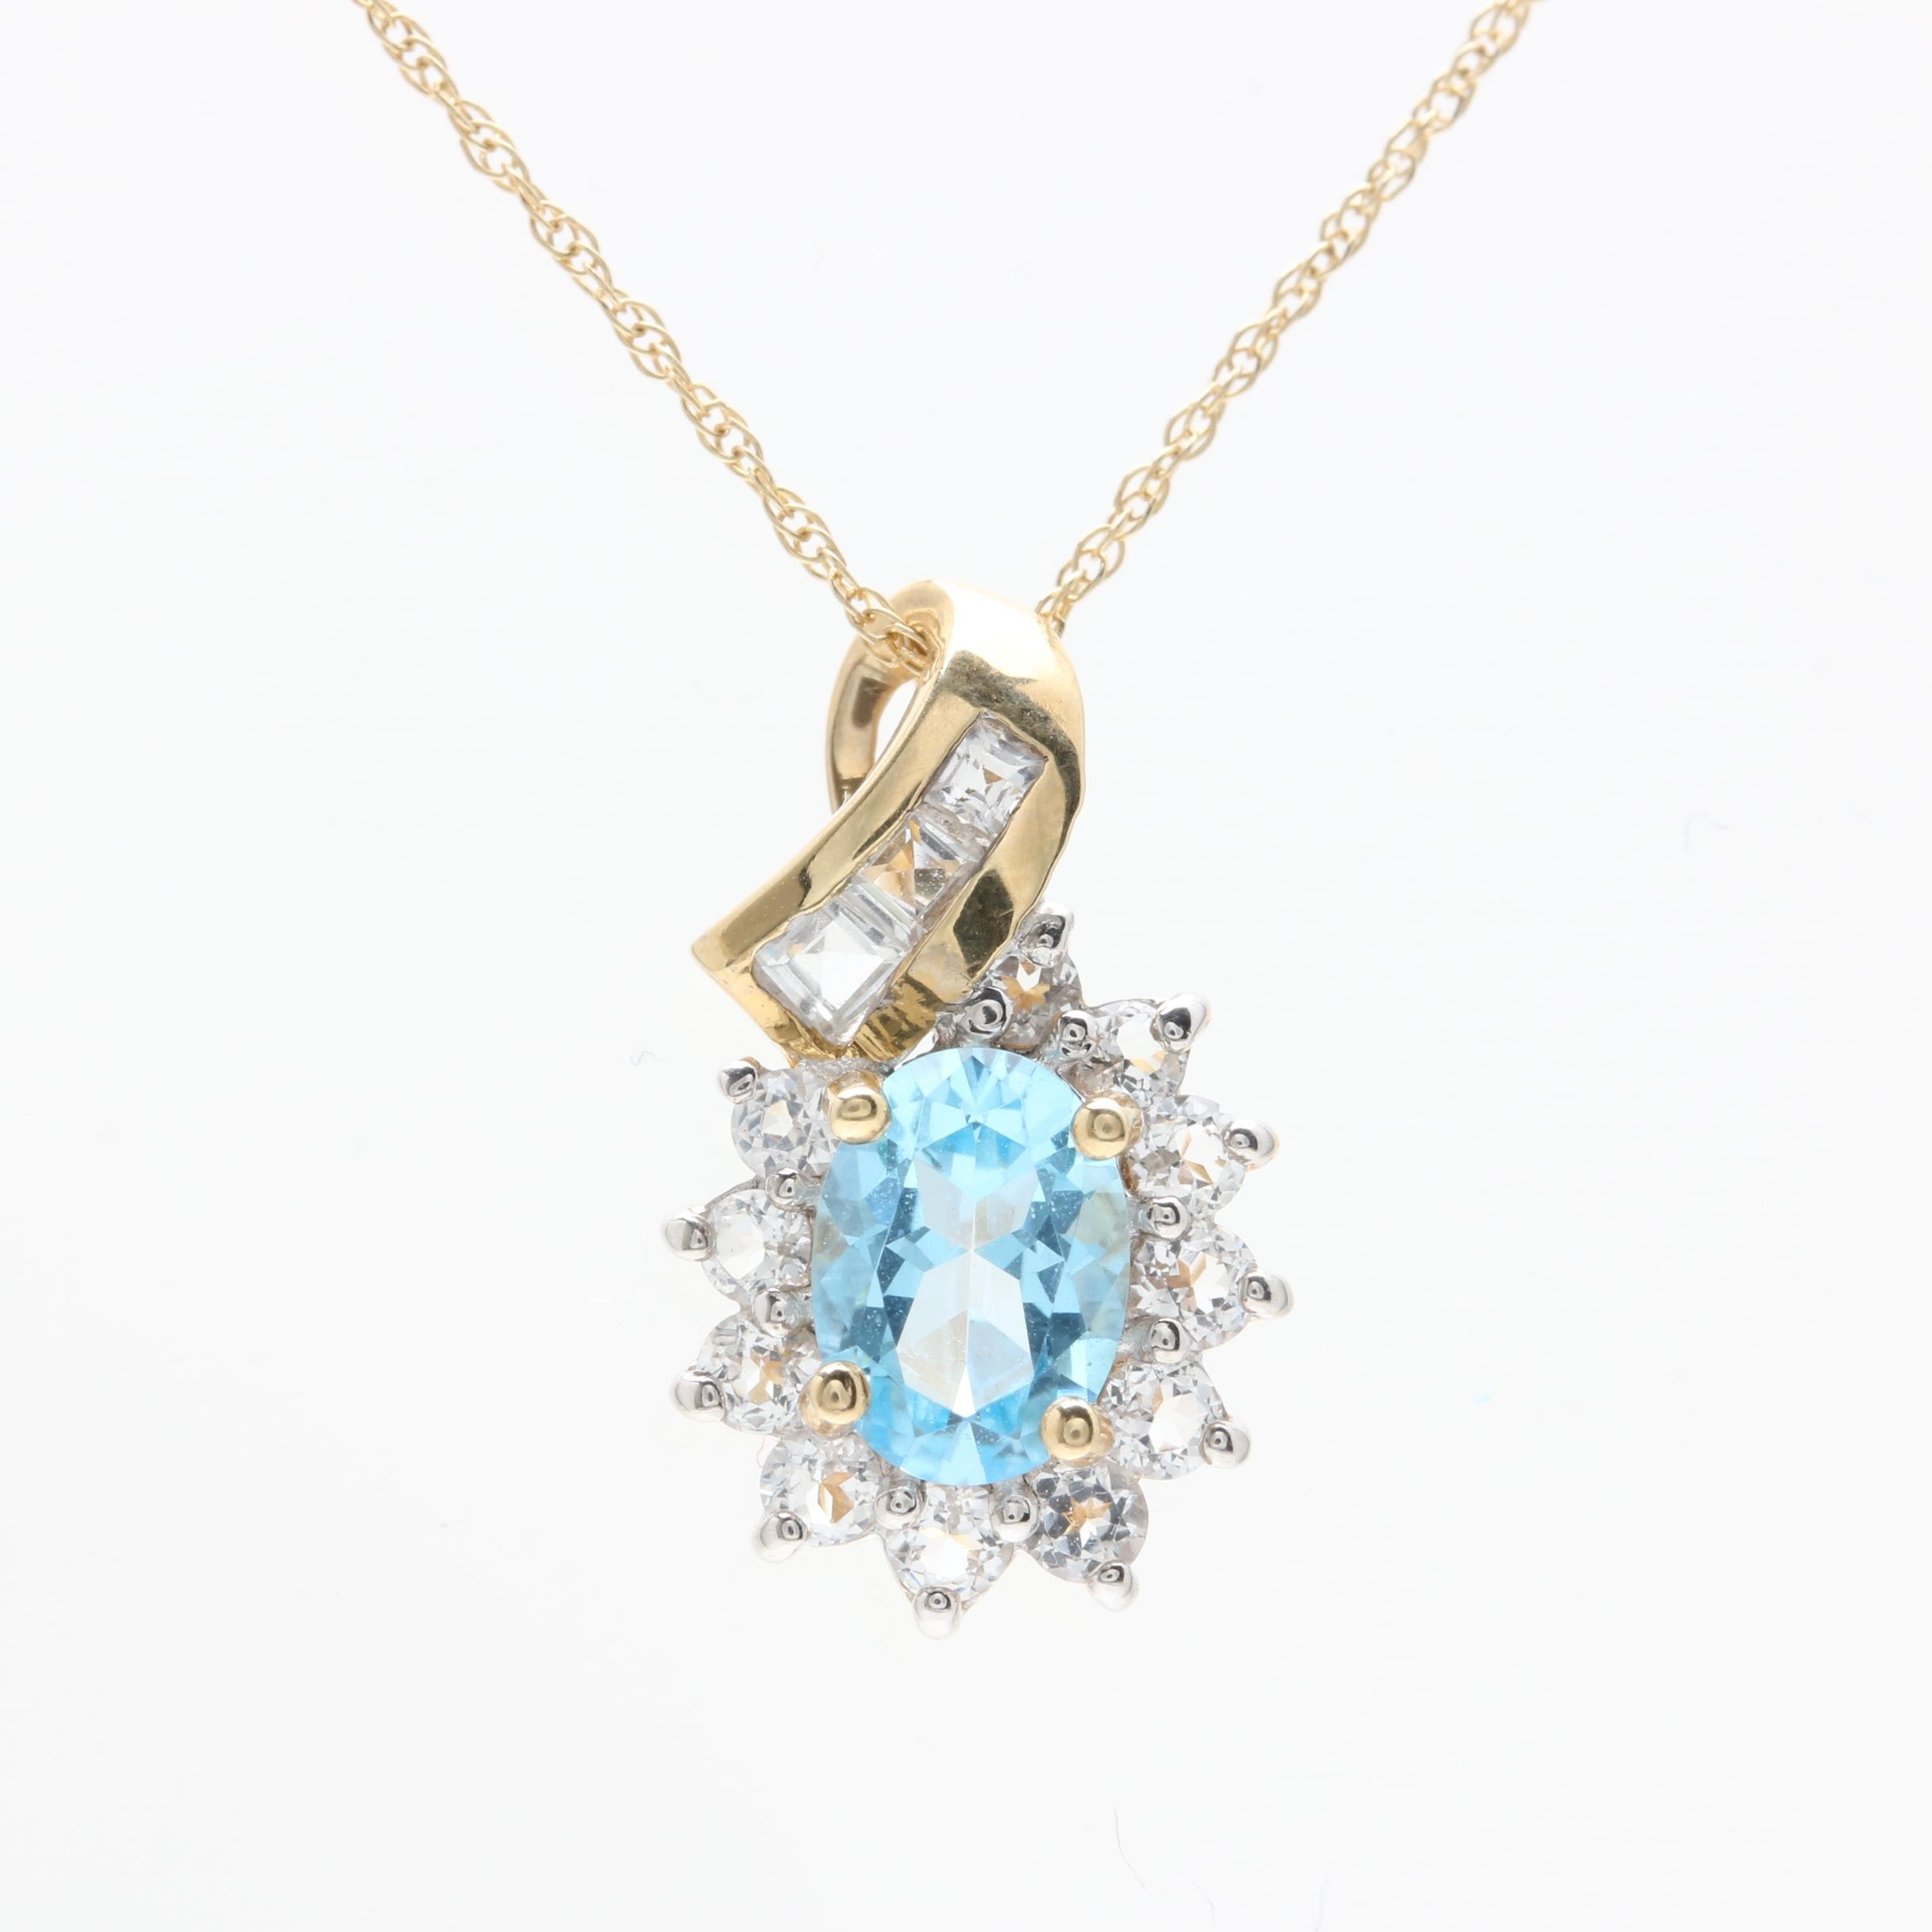 10K Yellow Gold Blue and White Topaz Pendant Necklace